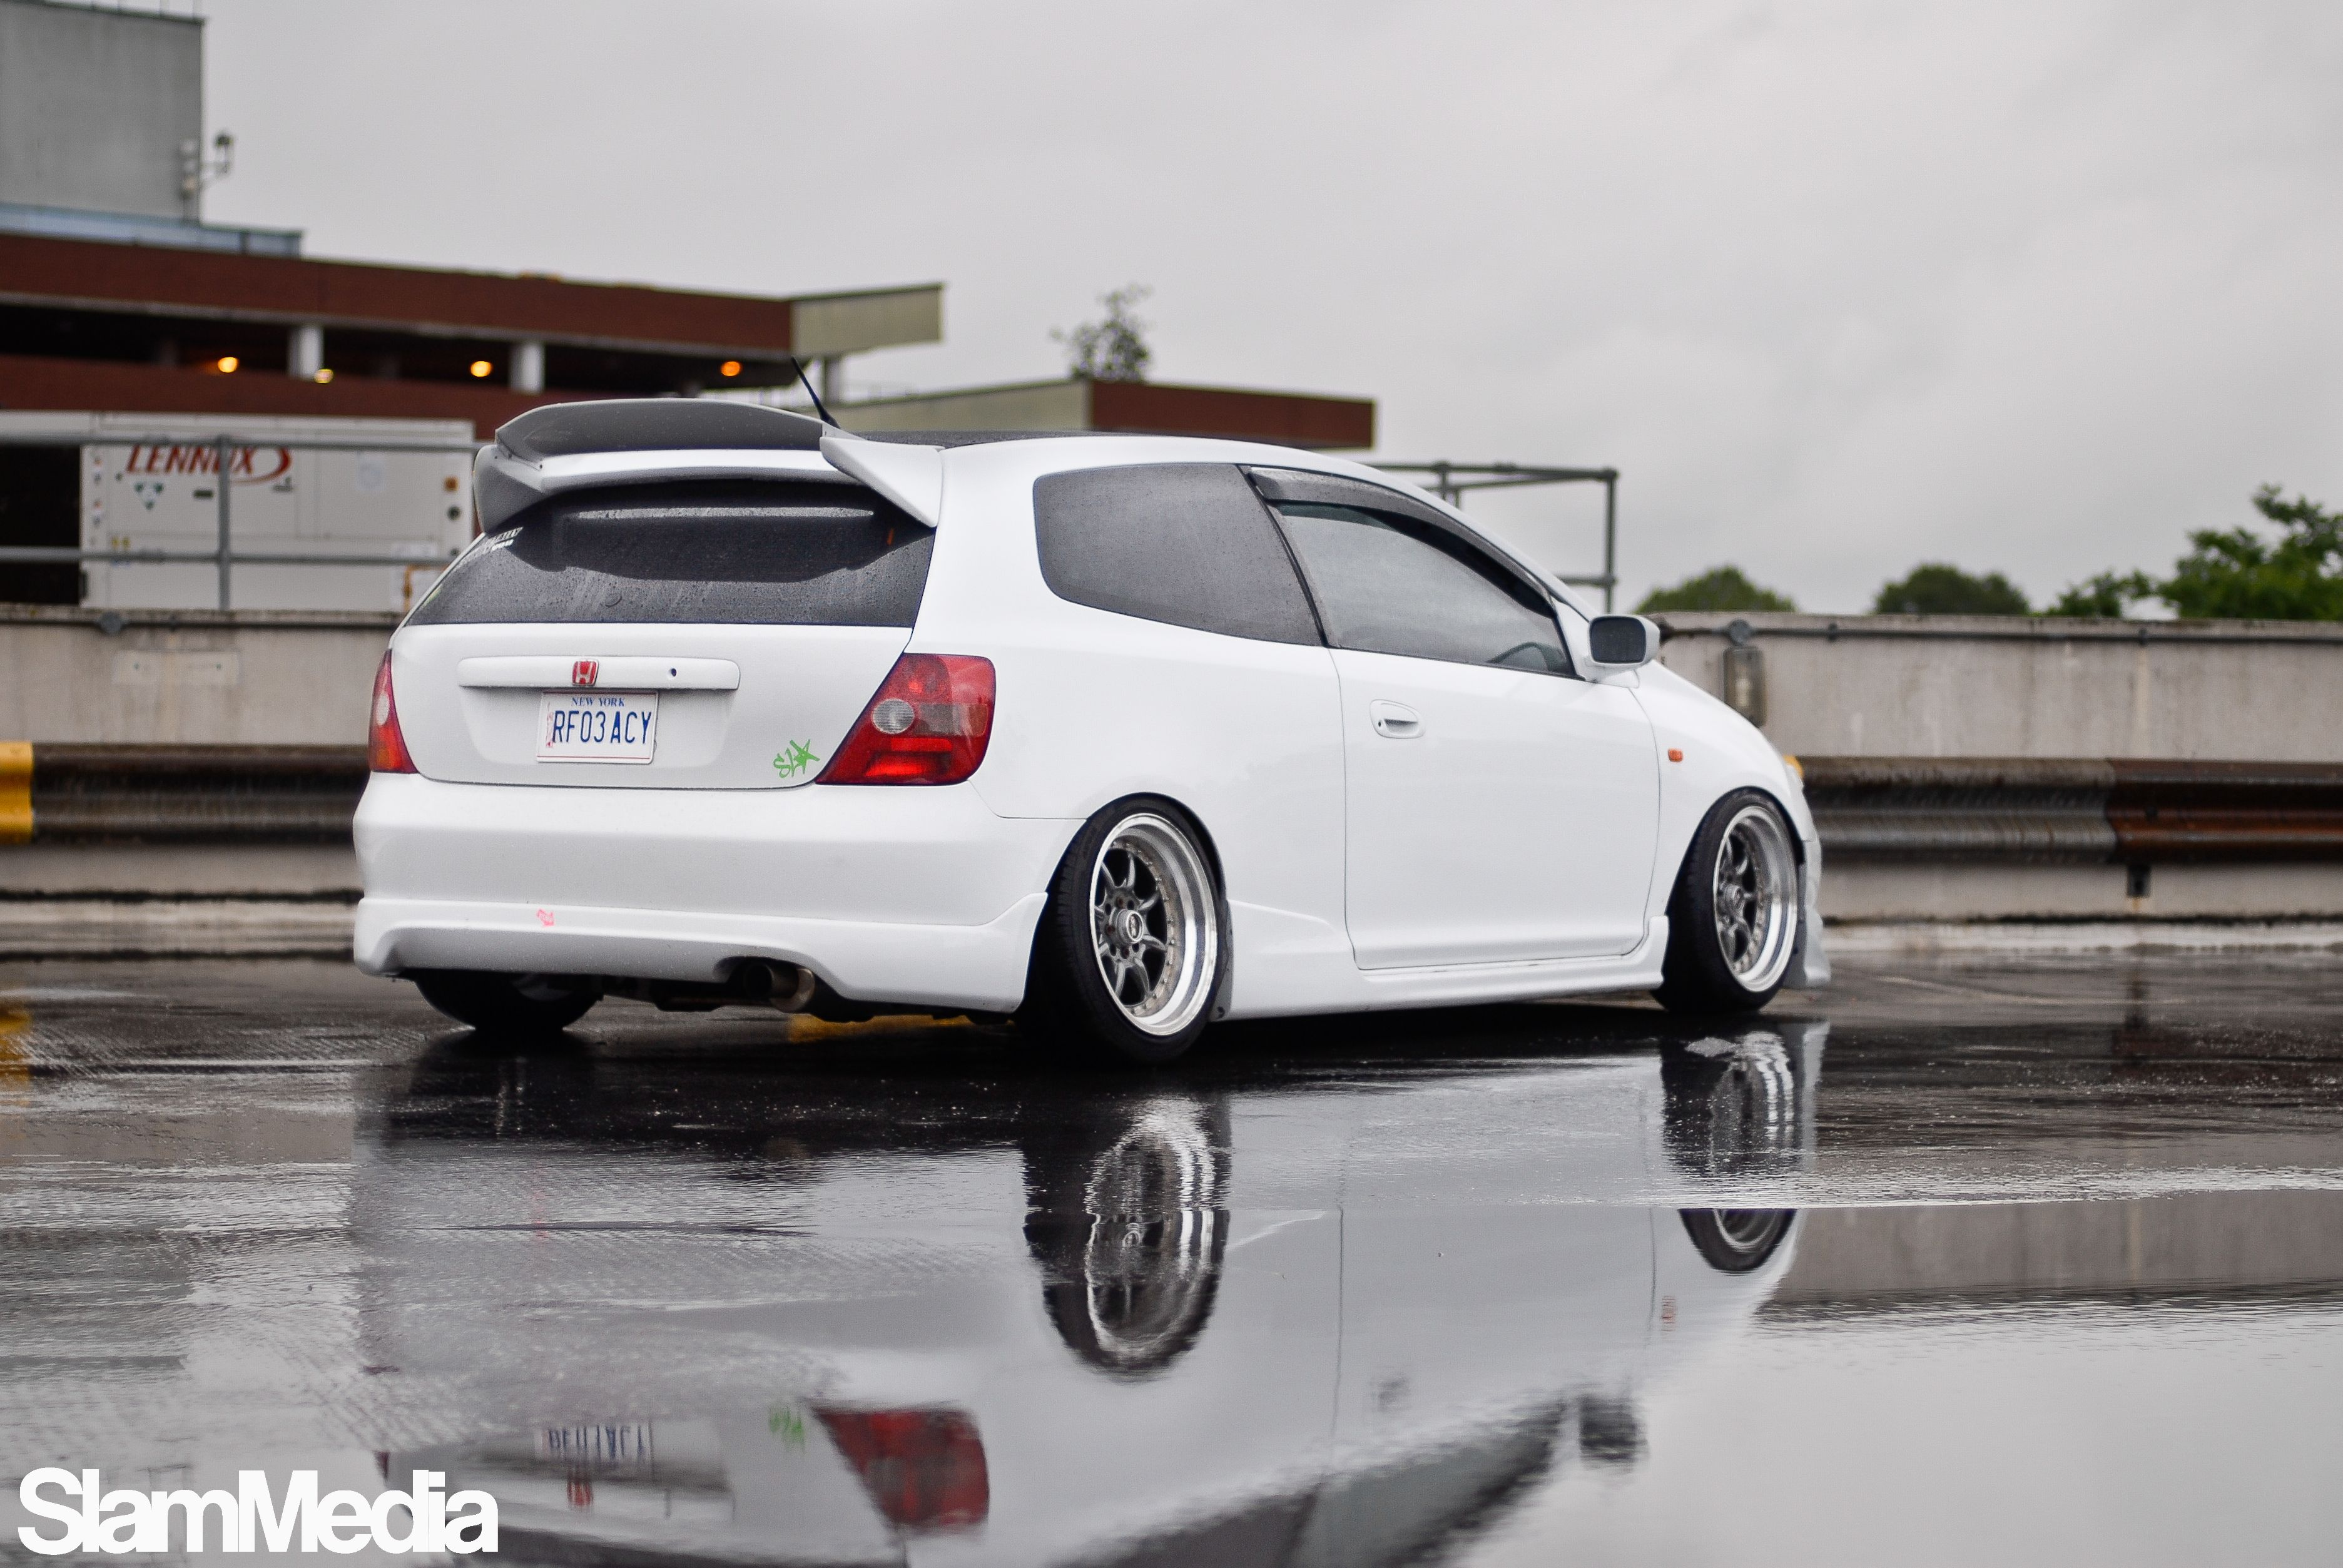 Ep3 Stance Hondas I Want Honda Honda Civic Honda Civic Type R